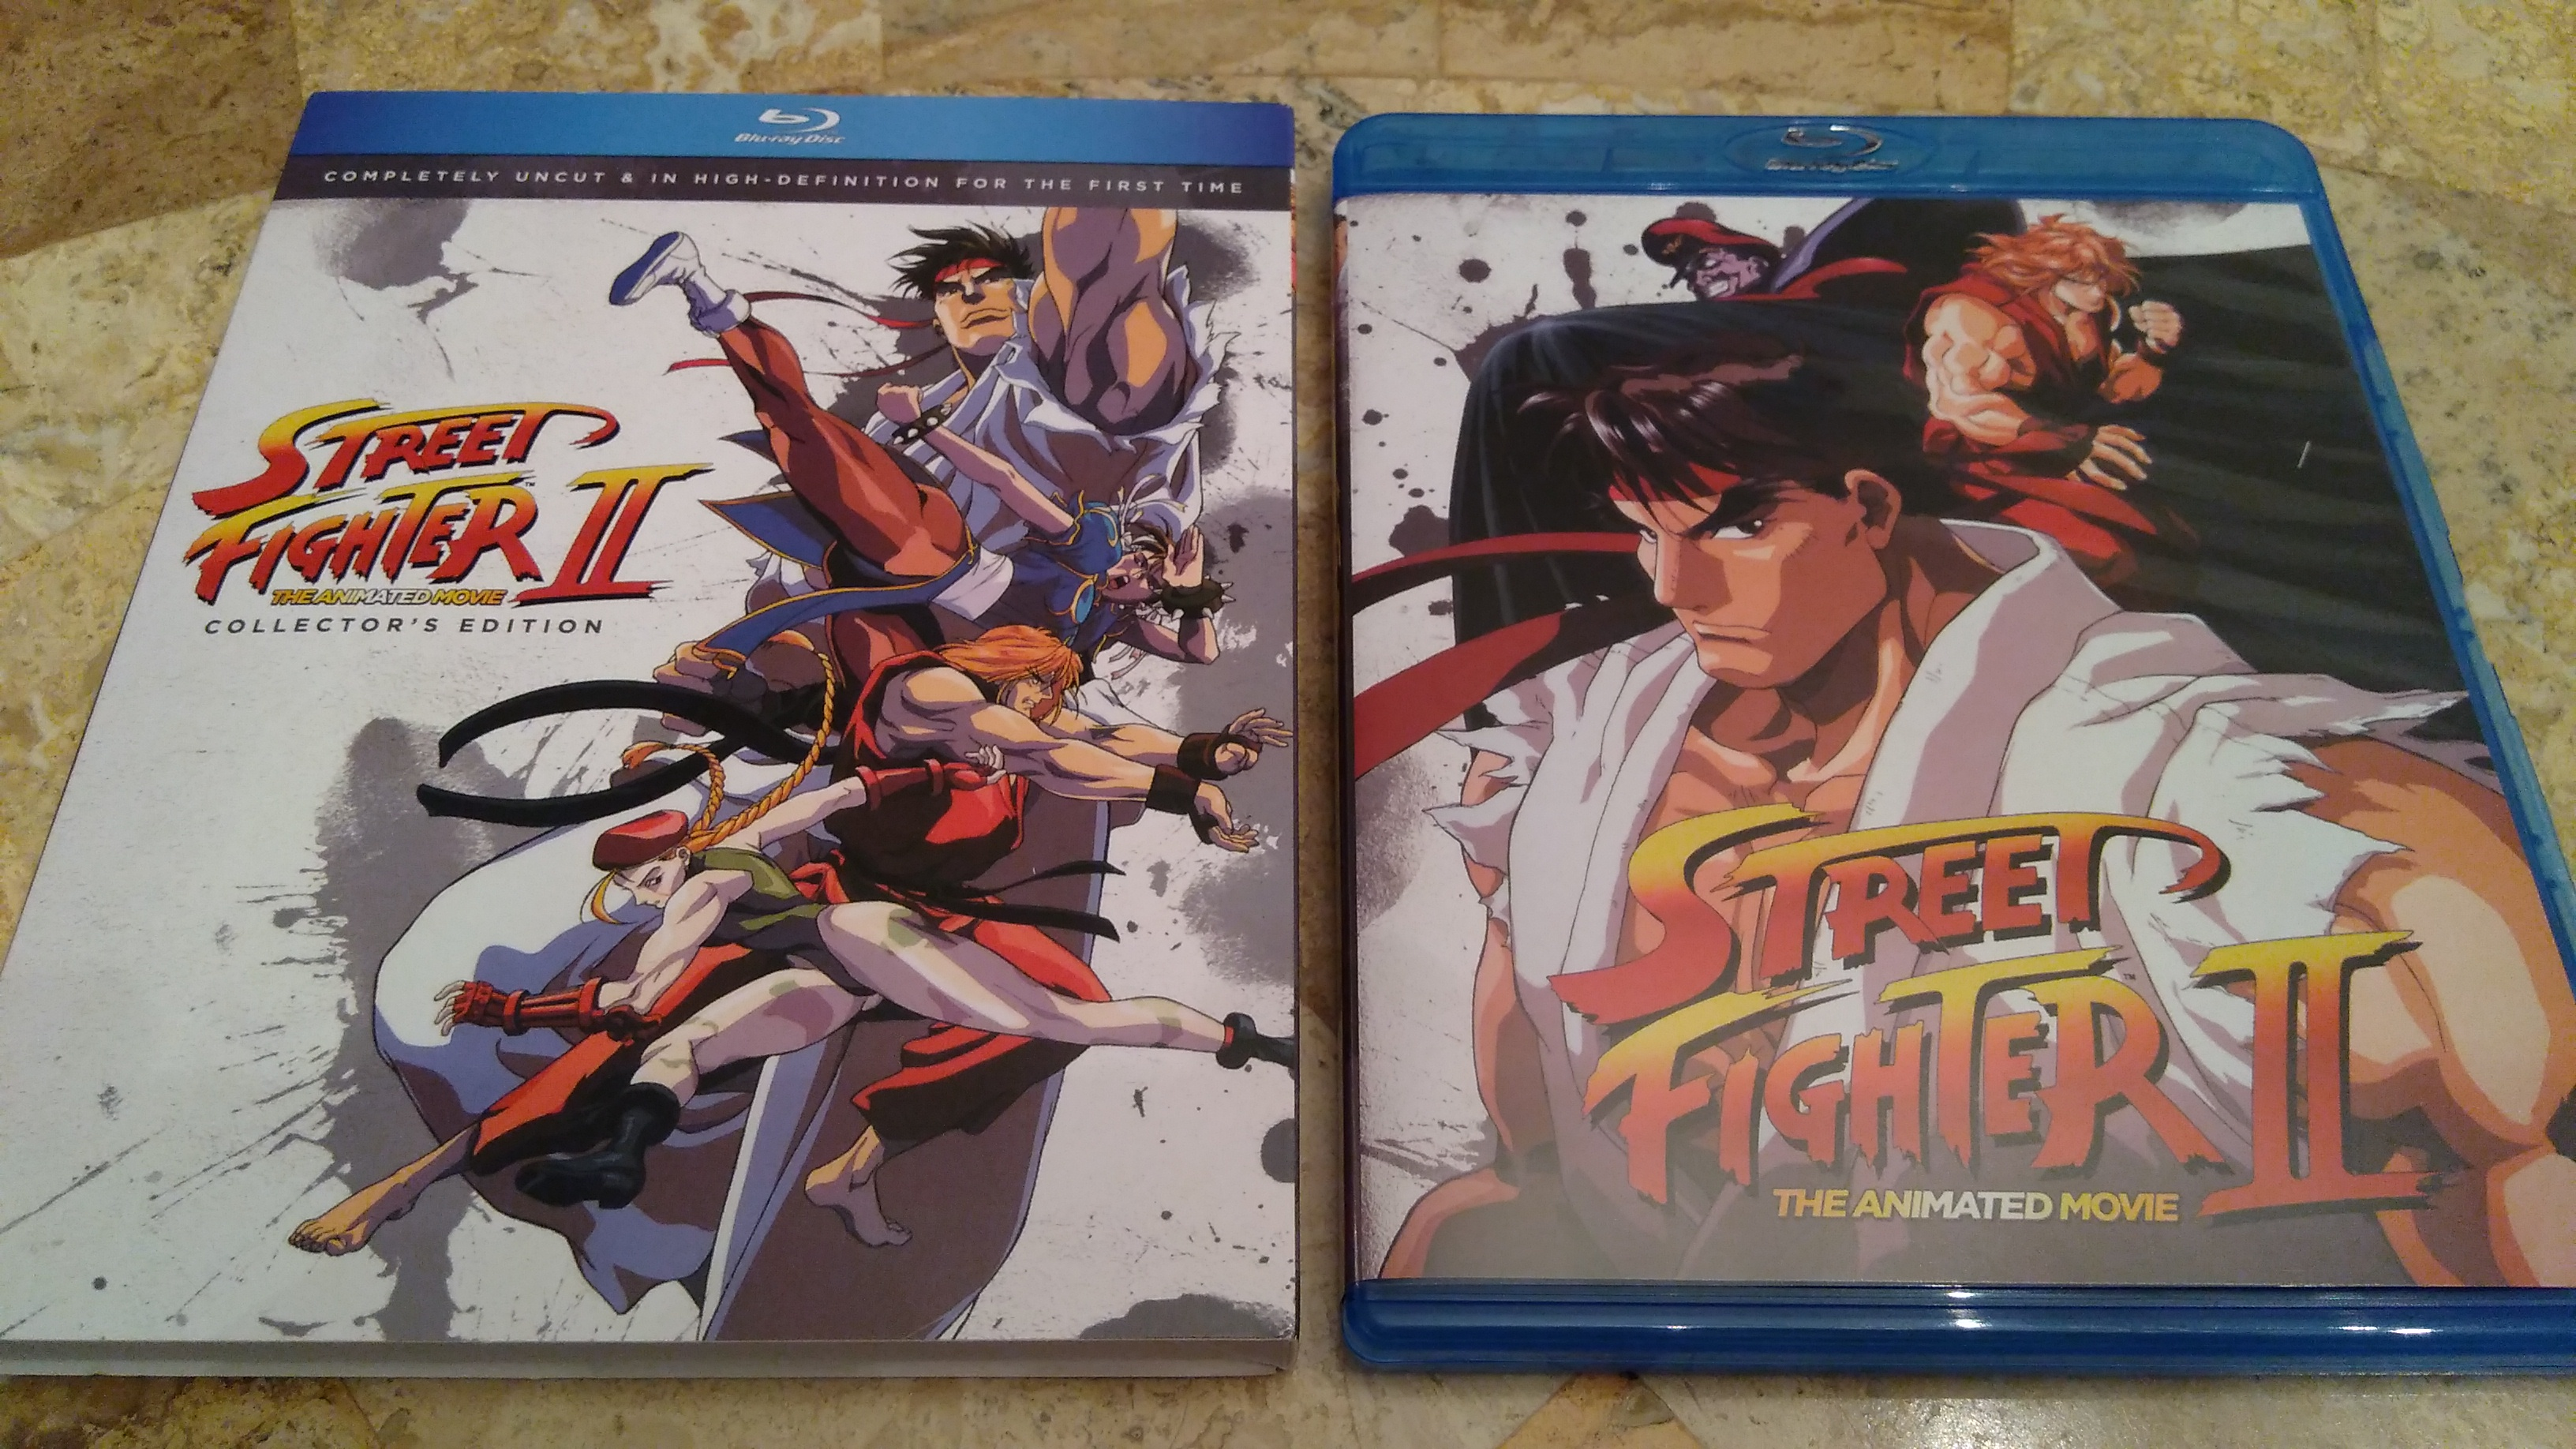 The Blu-ray's slipcover and case